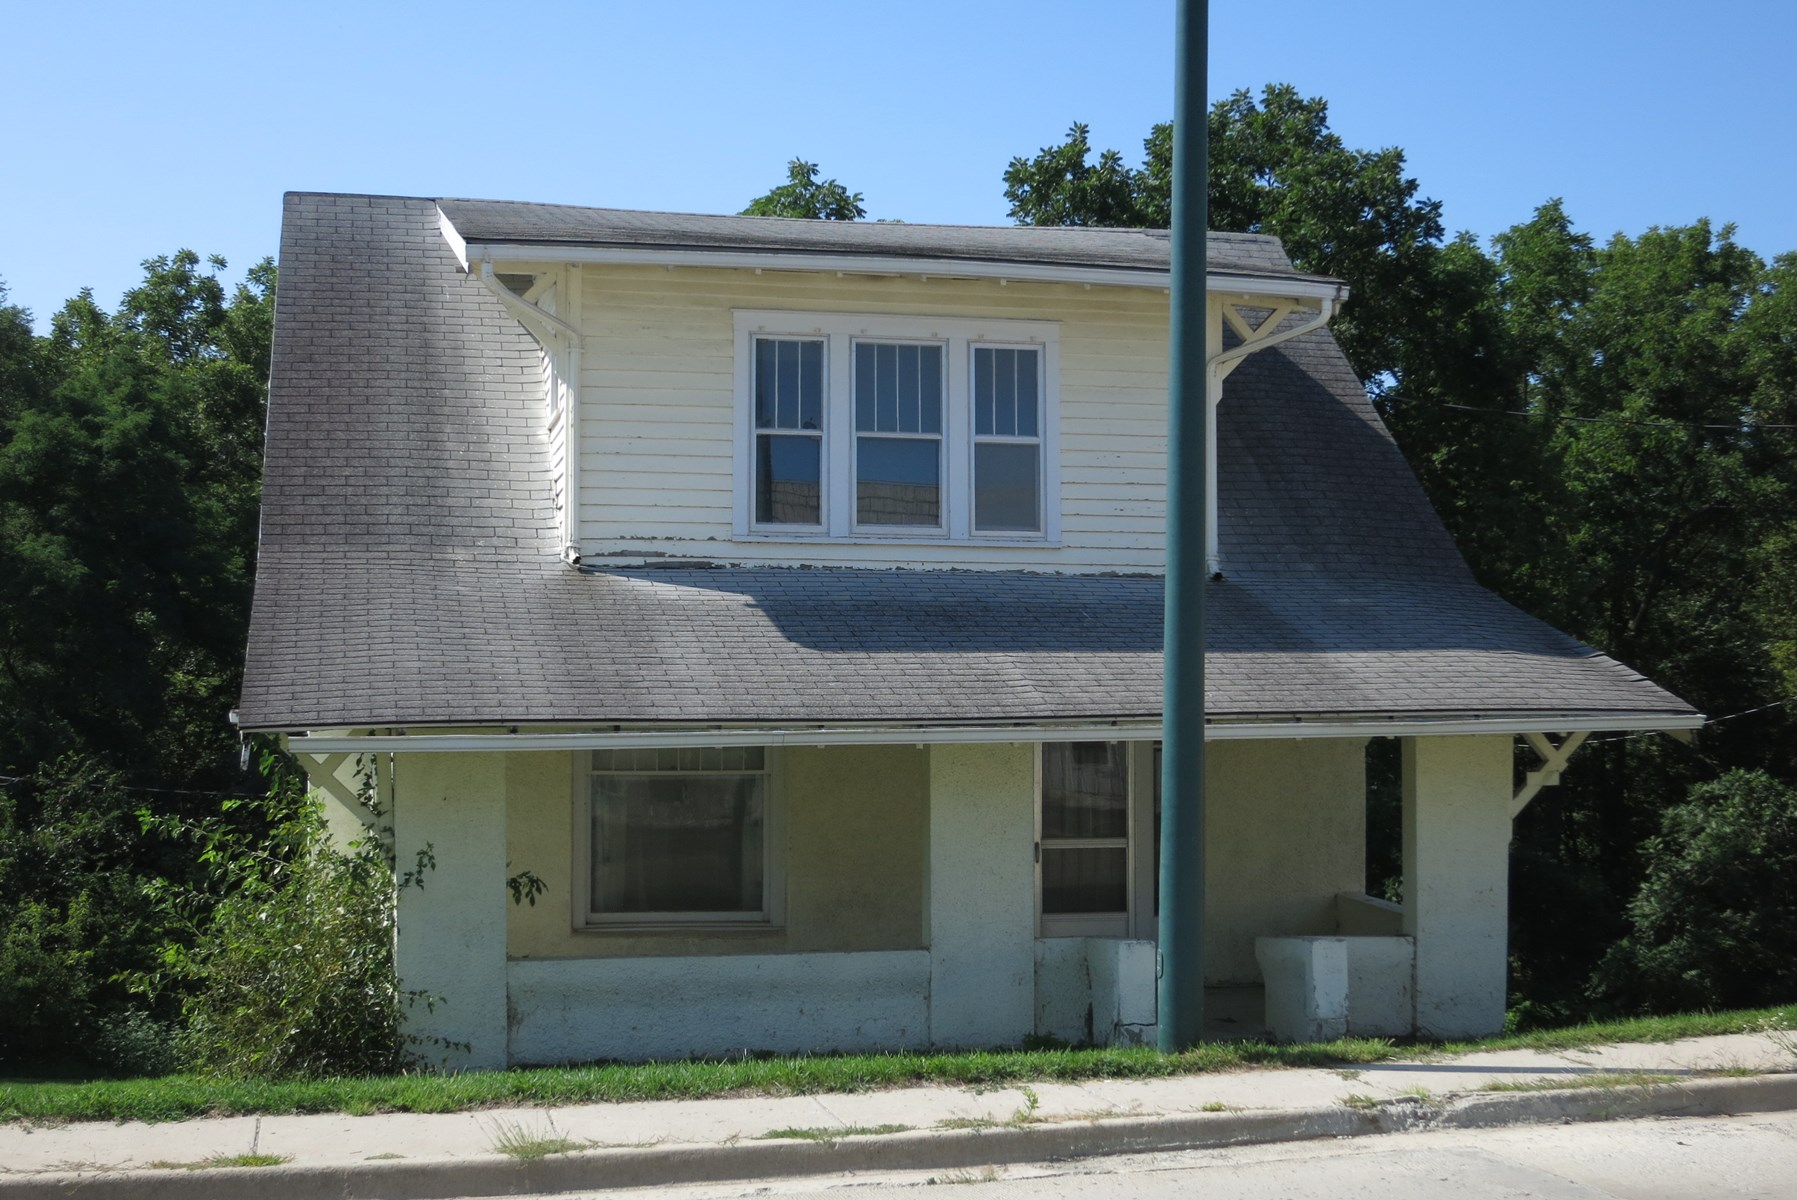 Residential Home in Bethany Missouri